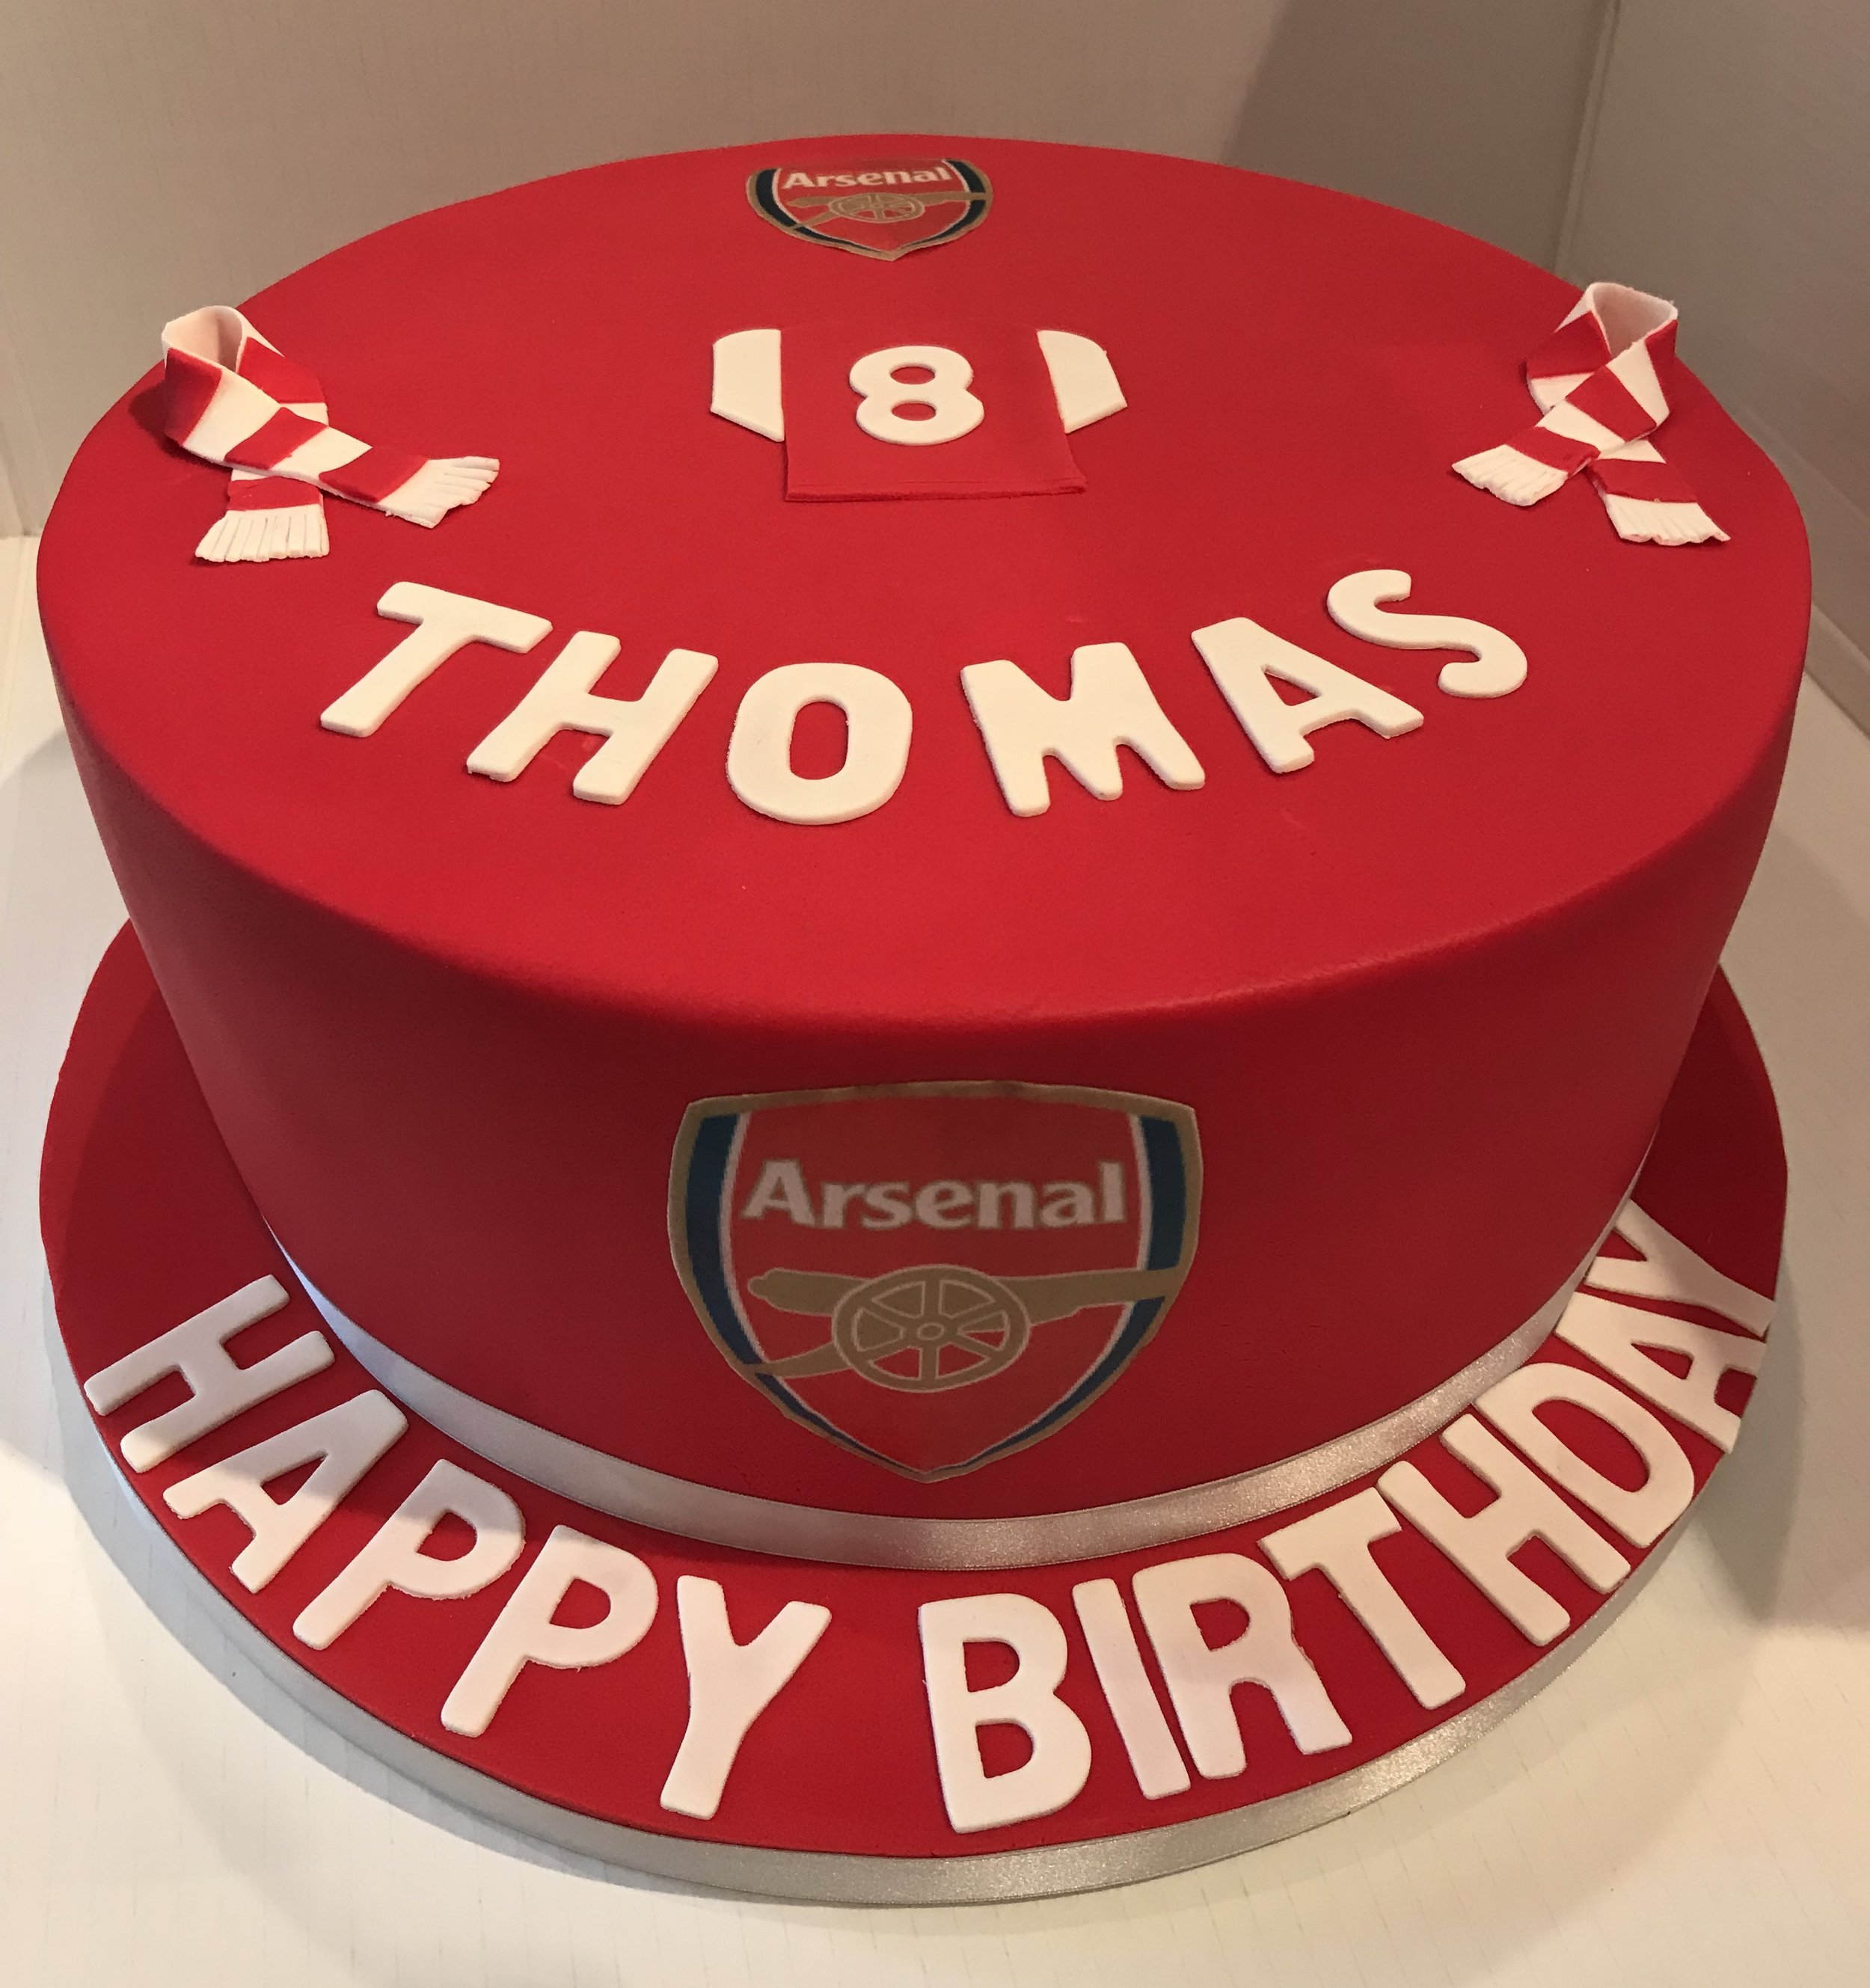 For Thomas, a great Arsenal fan!